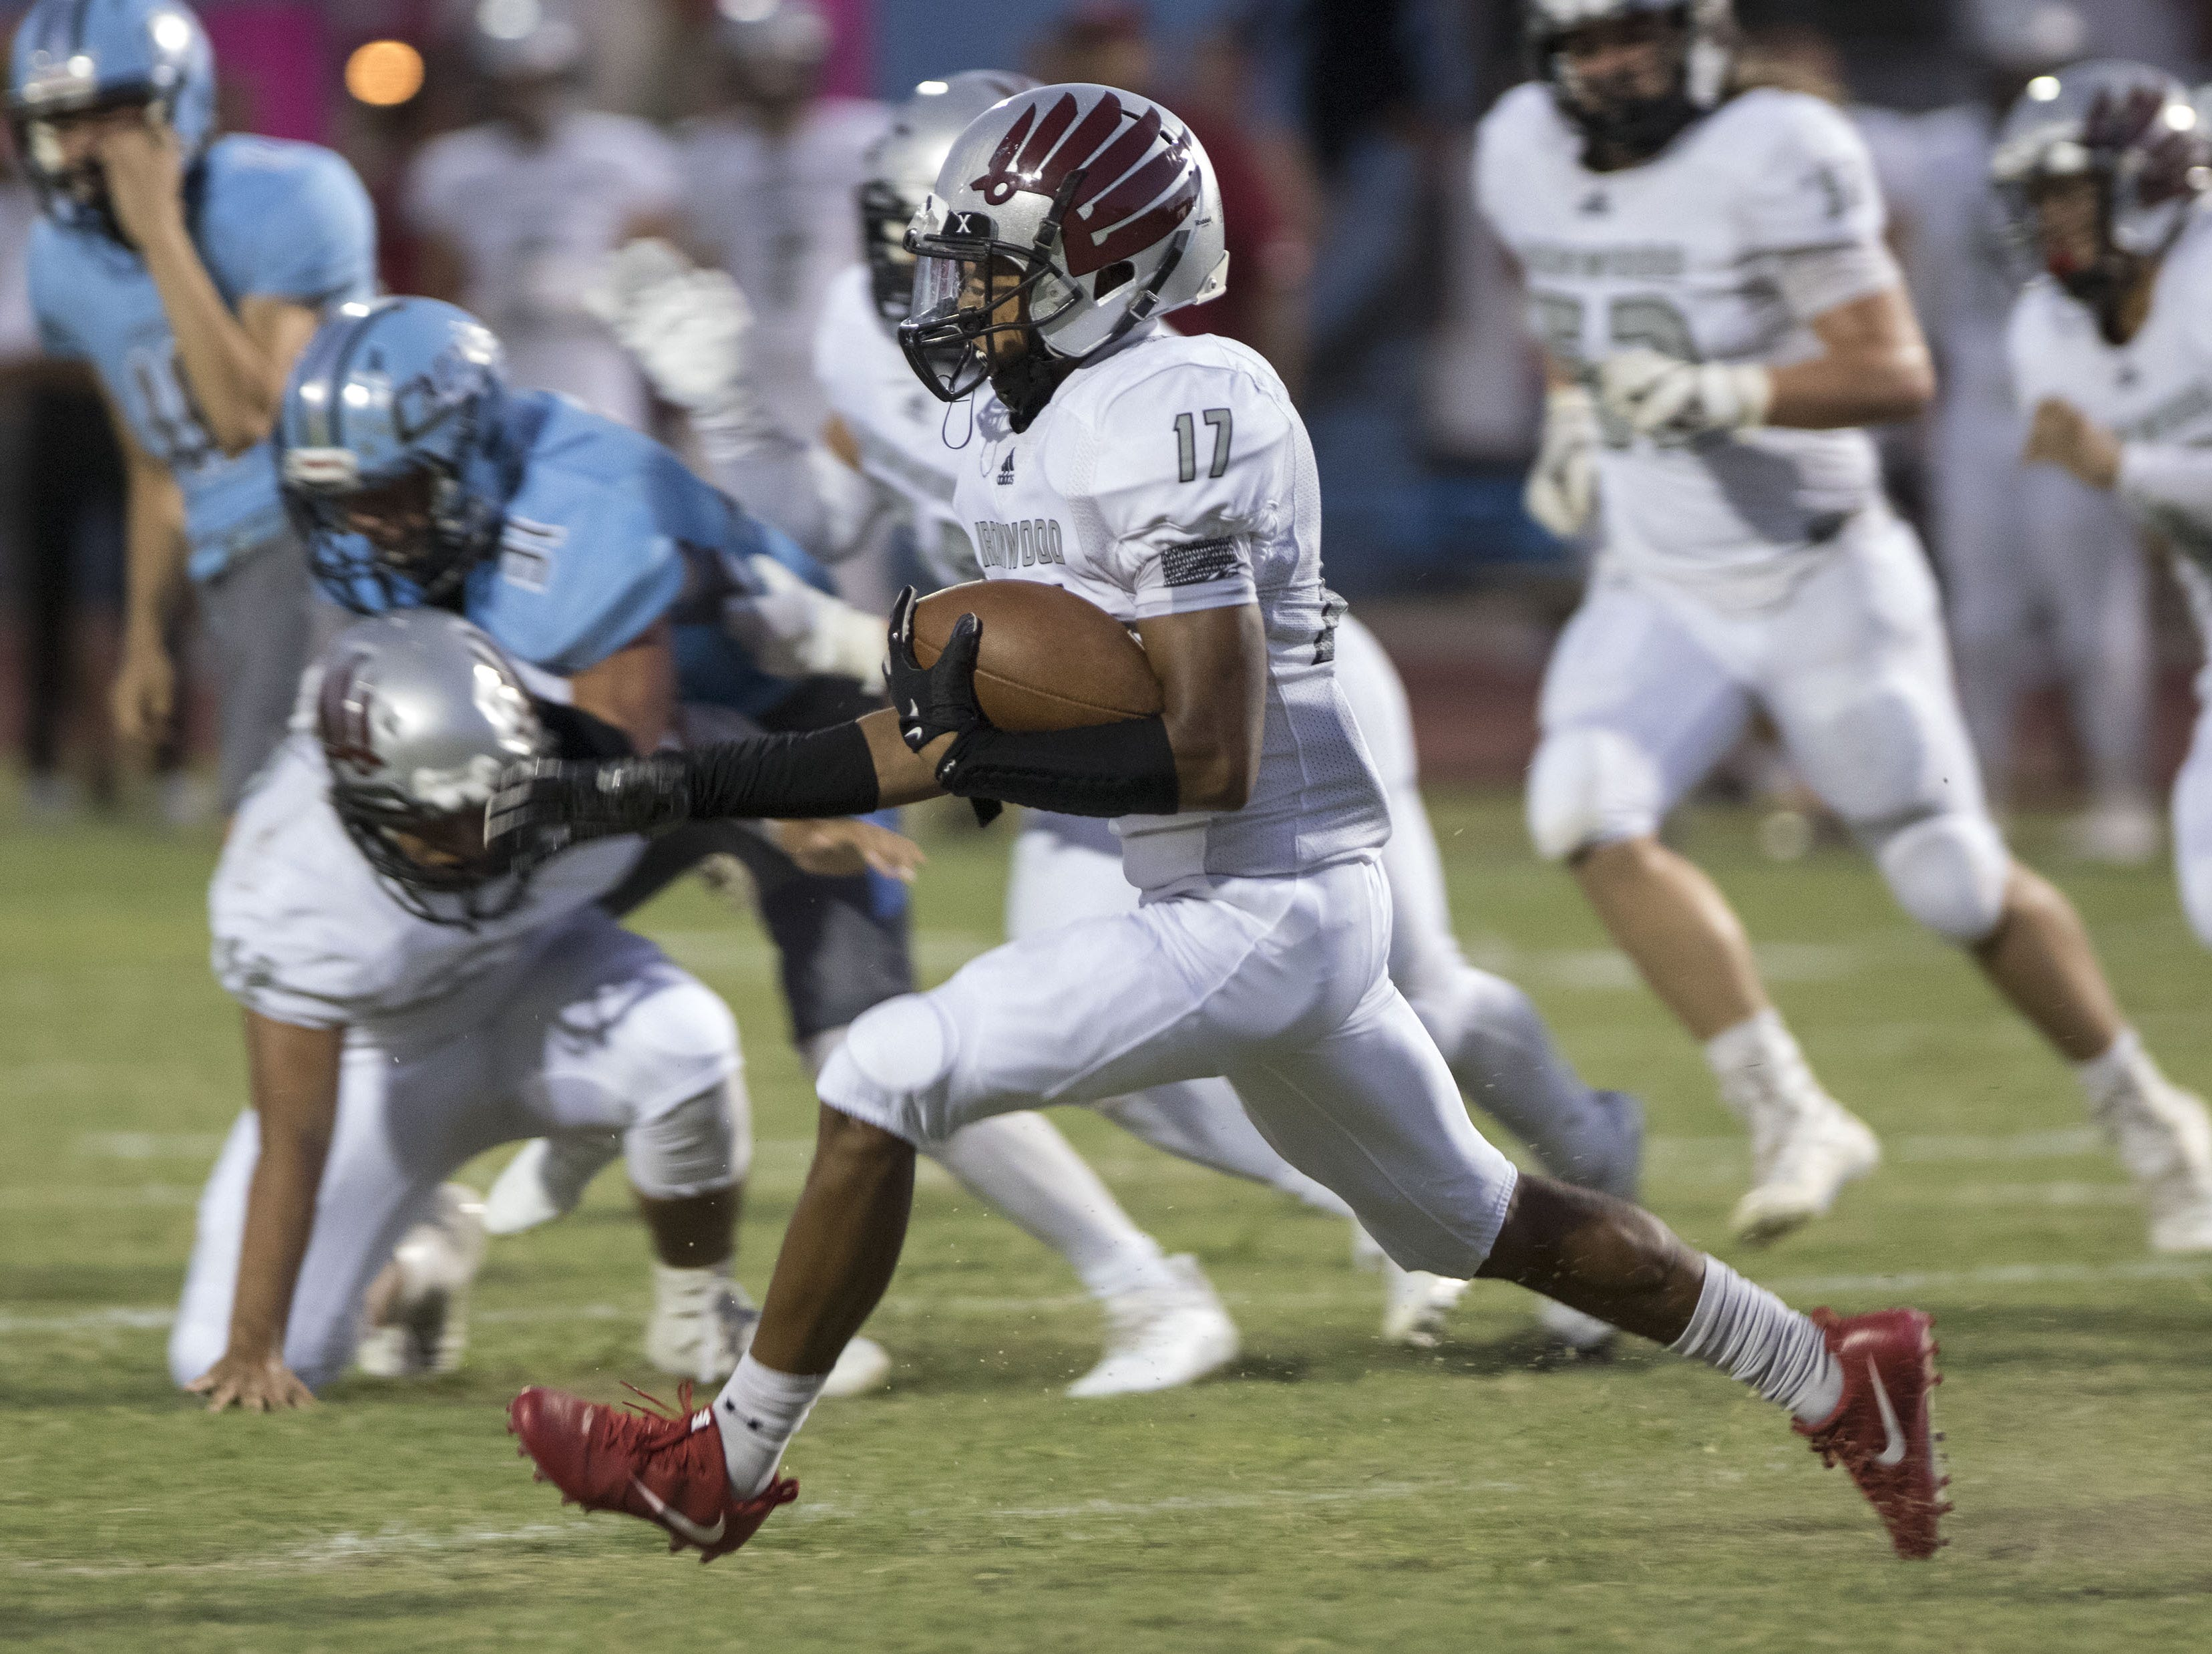 Ironwood's Alex Panduro finds running room against Cactus during their game in Glendale Friday, Aug. 31, 2018.